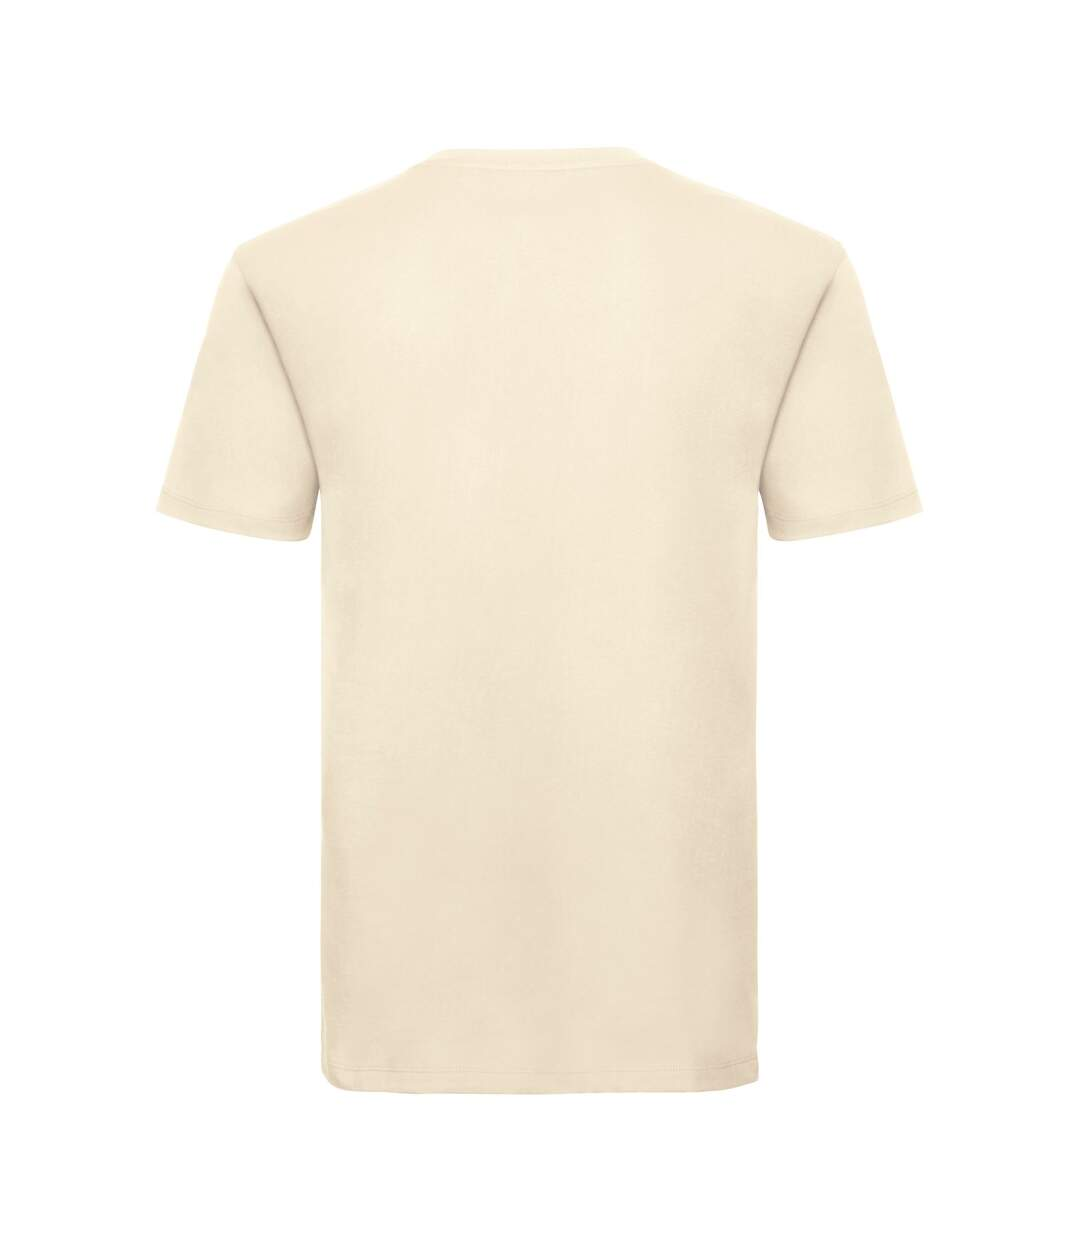 Russell Mens Authentic Pure Organic T-Shirt (Natural) - UTPC3569